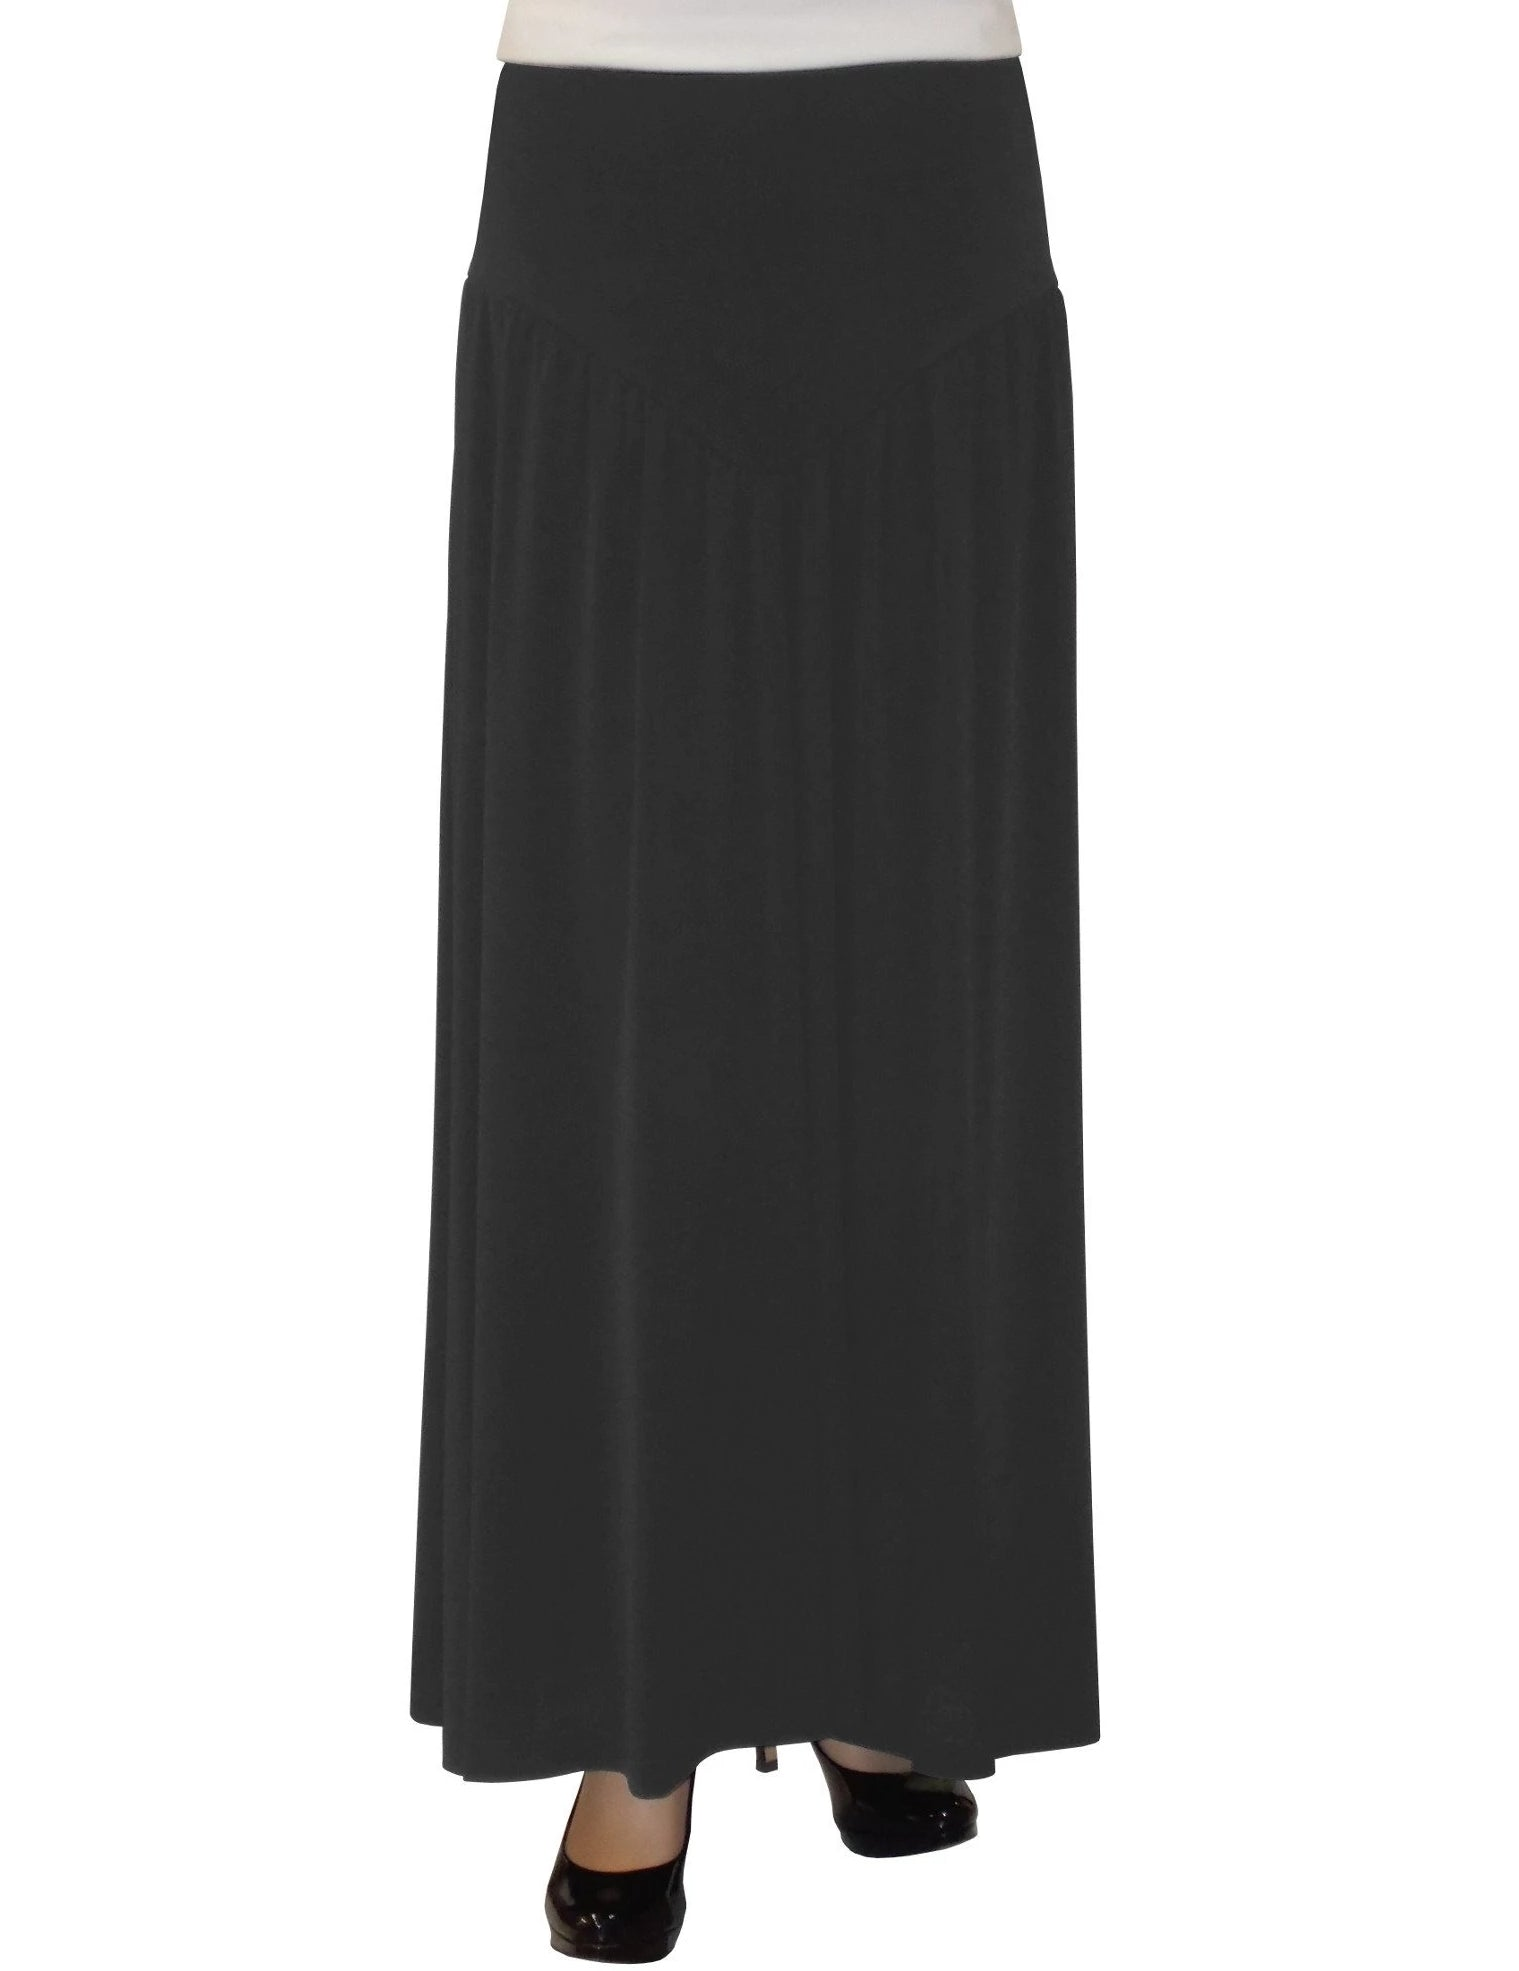 Women's Black Slinky Knit V- Yoke Ankle Length Long Skirt